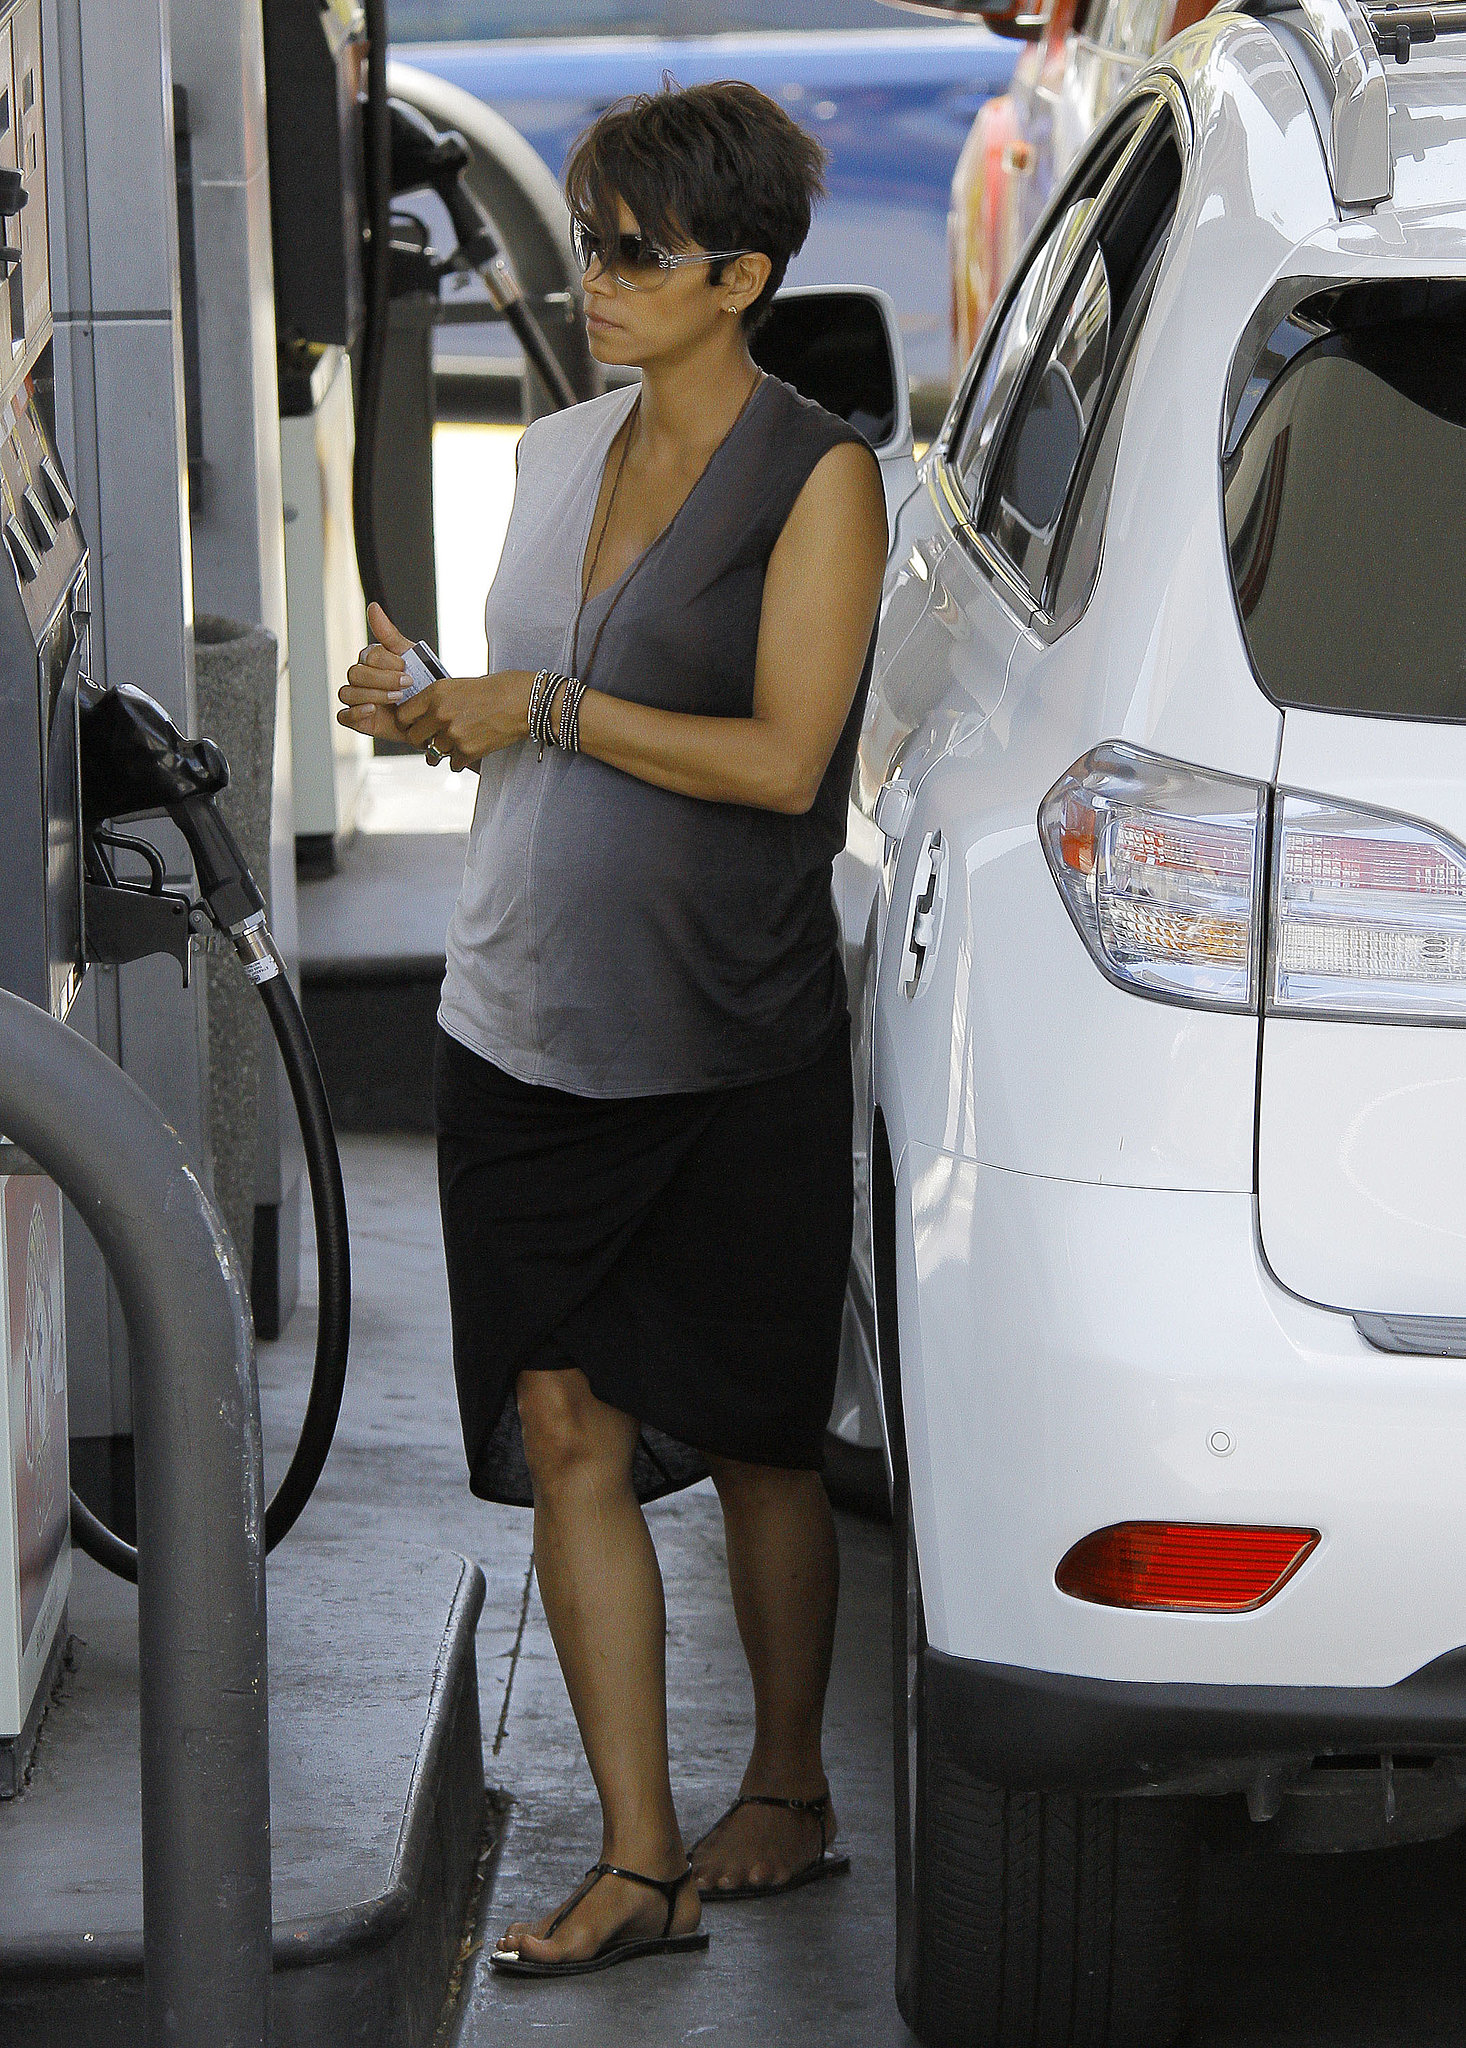 A little gas station run didn't stop Halle from looking ultrafashionable in an ombré tank and high-low skirt. Beaded bracelets added much-needed shine.